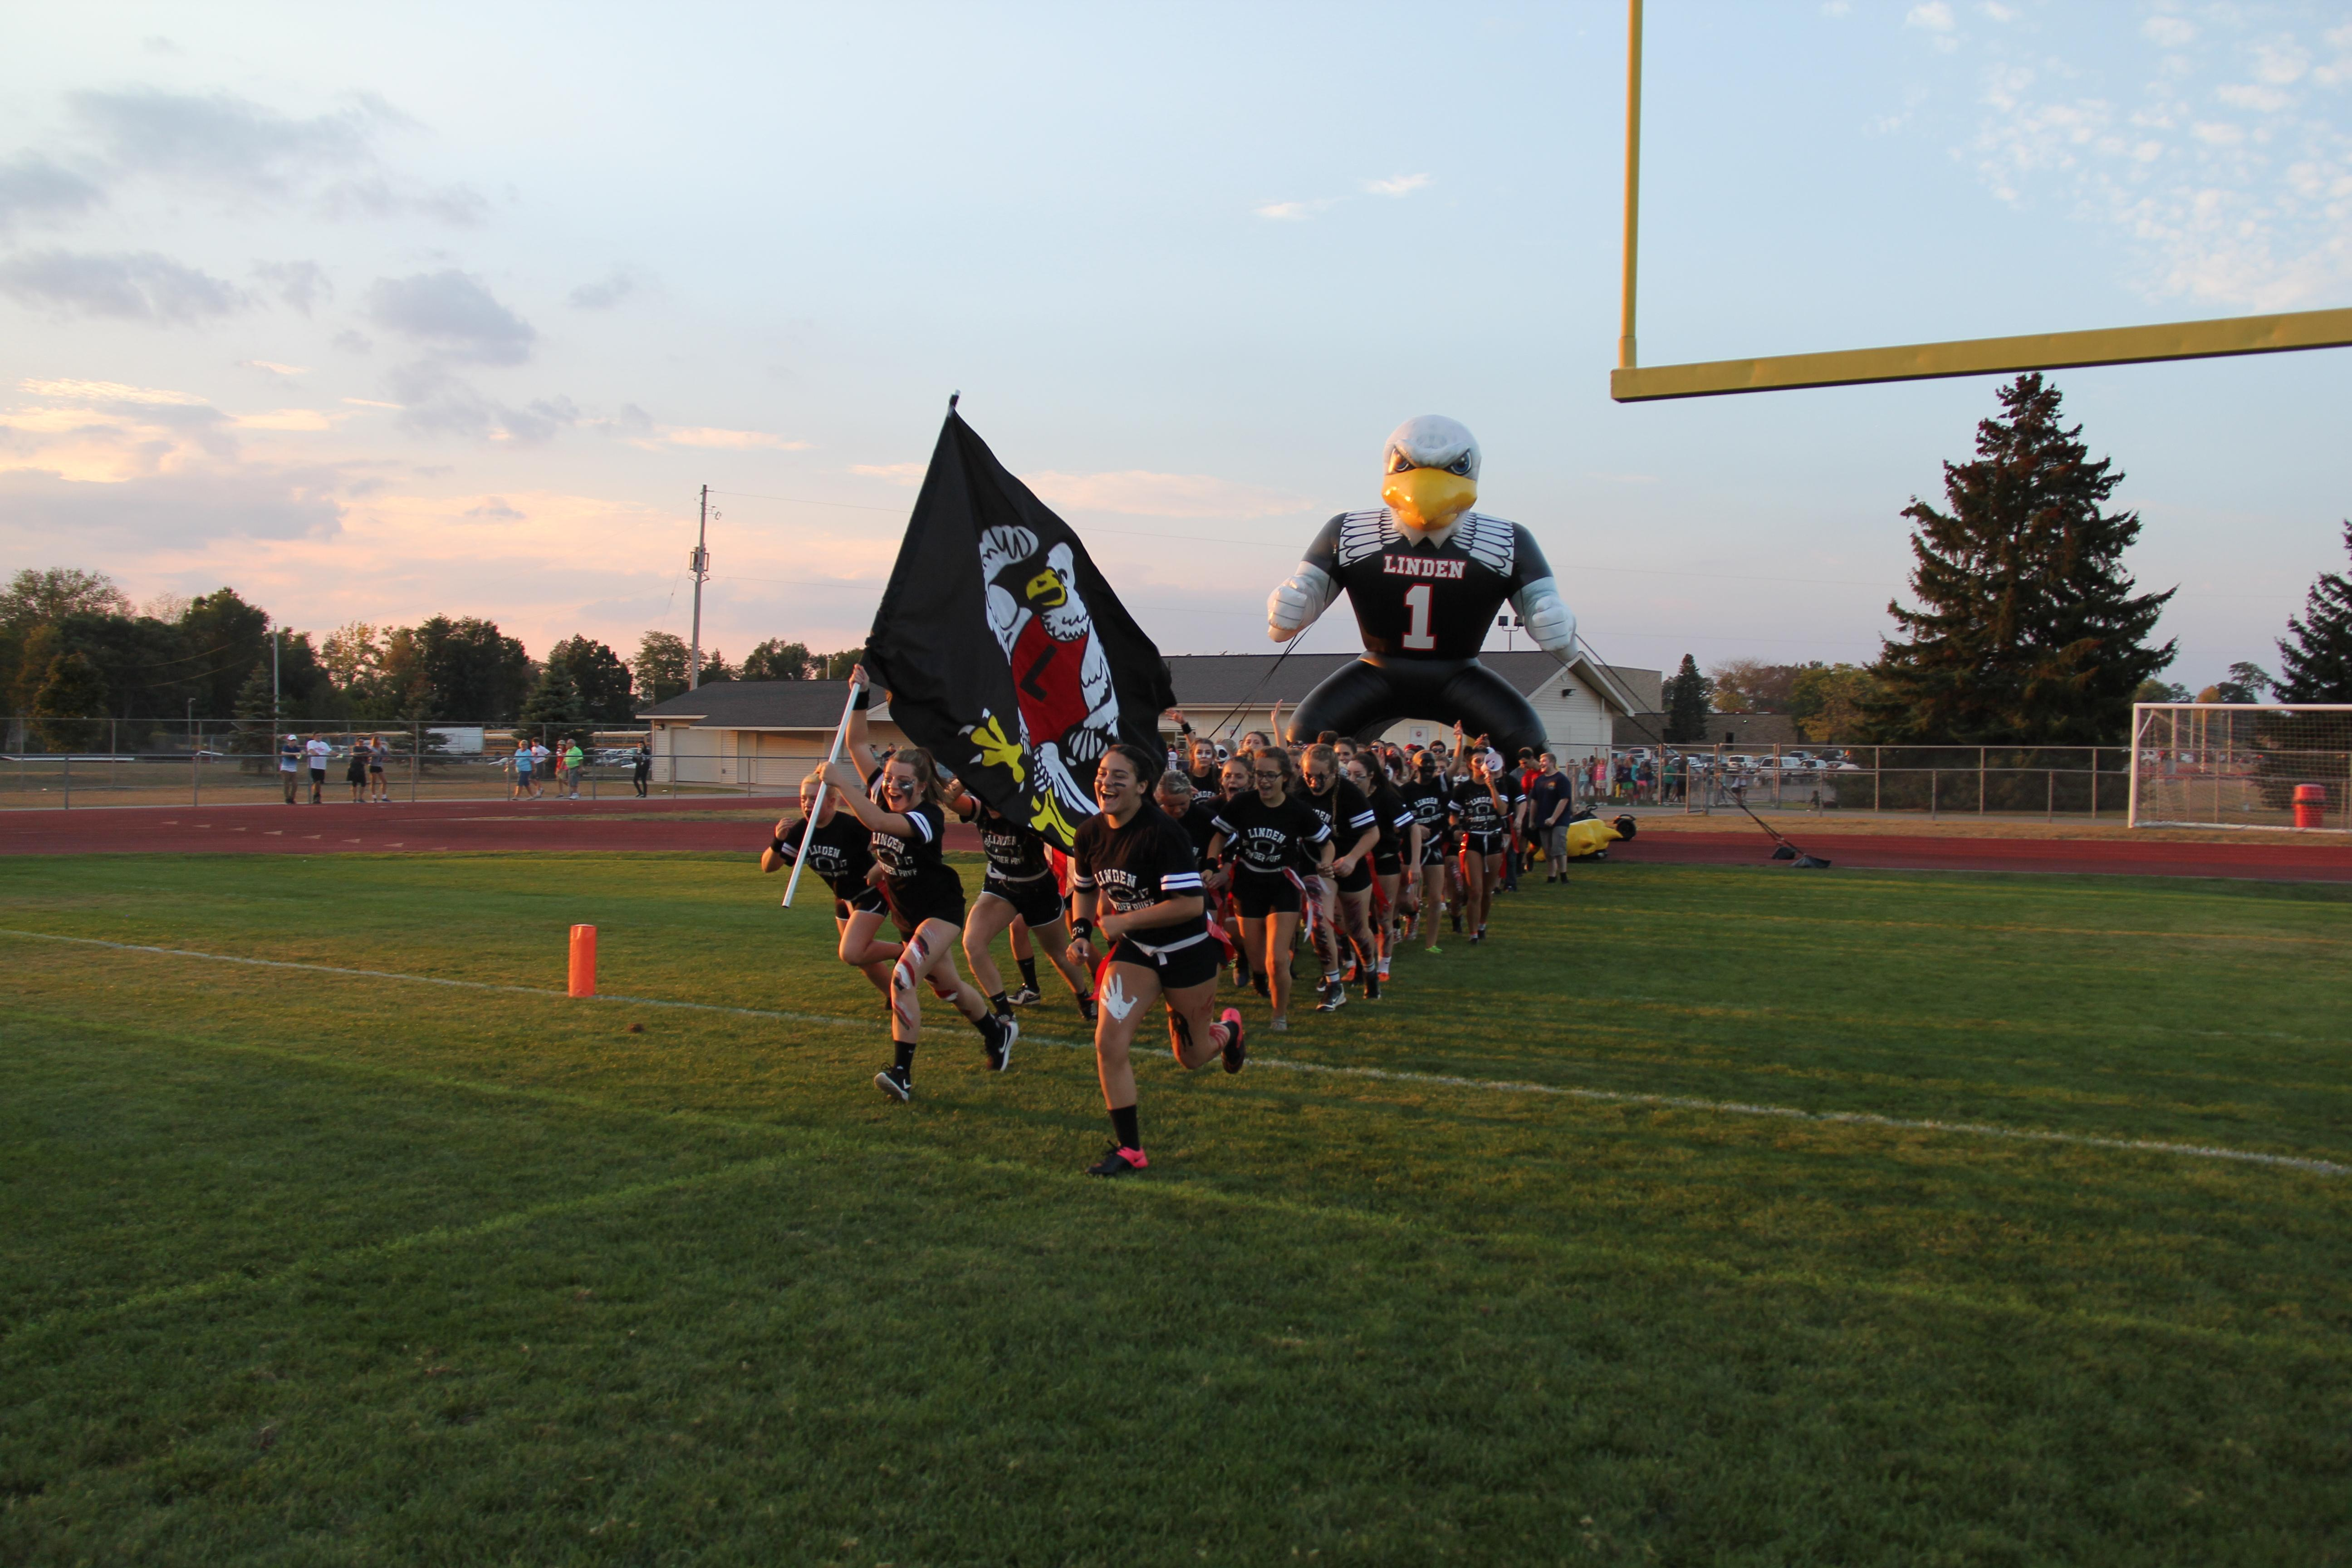 Powderpuff team running onto a football field with a school flag and eagle mascot